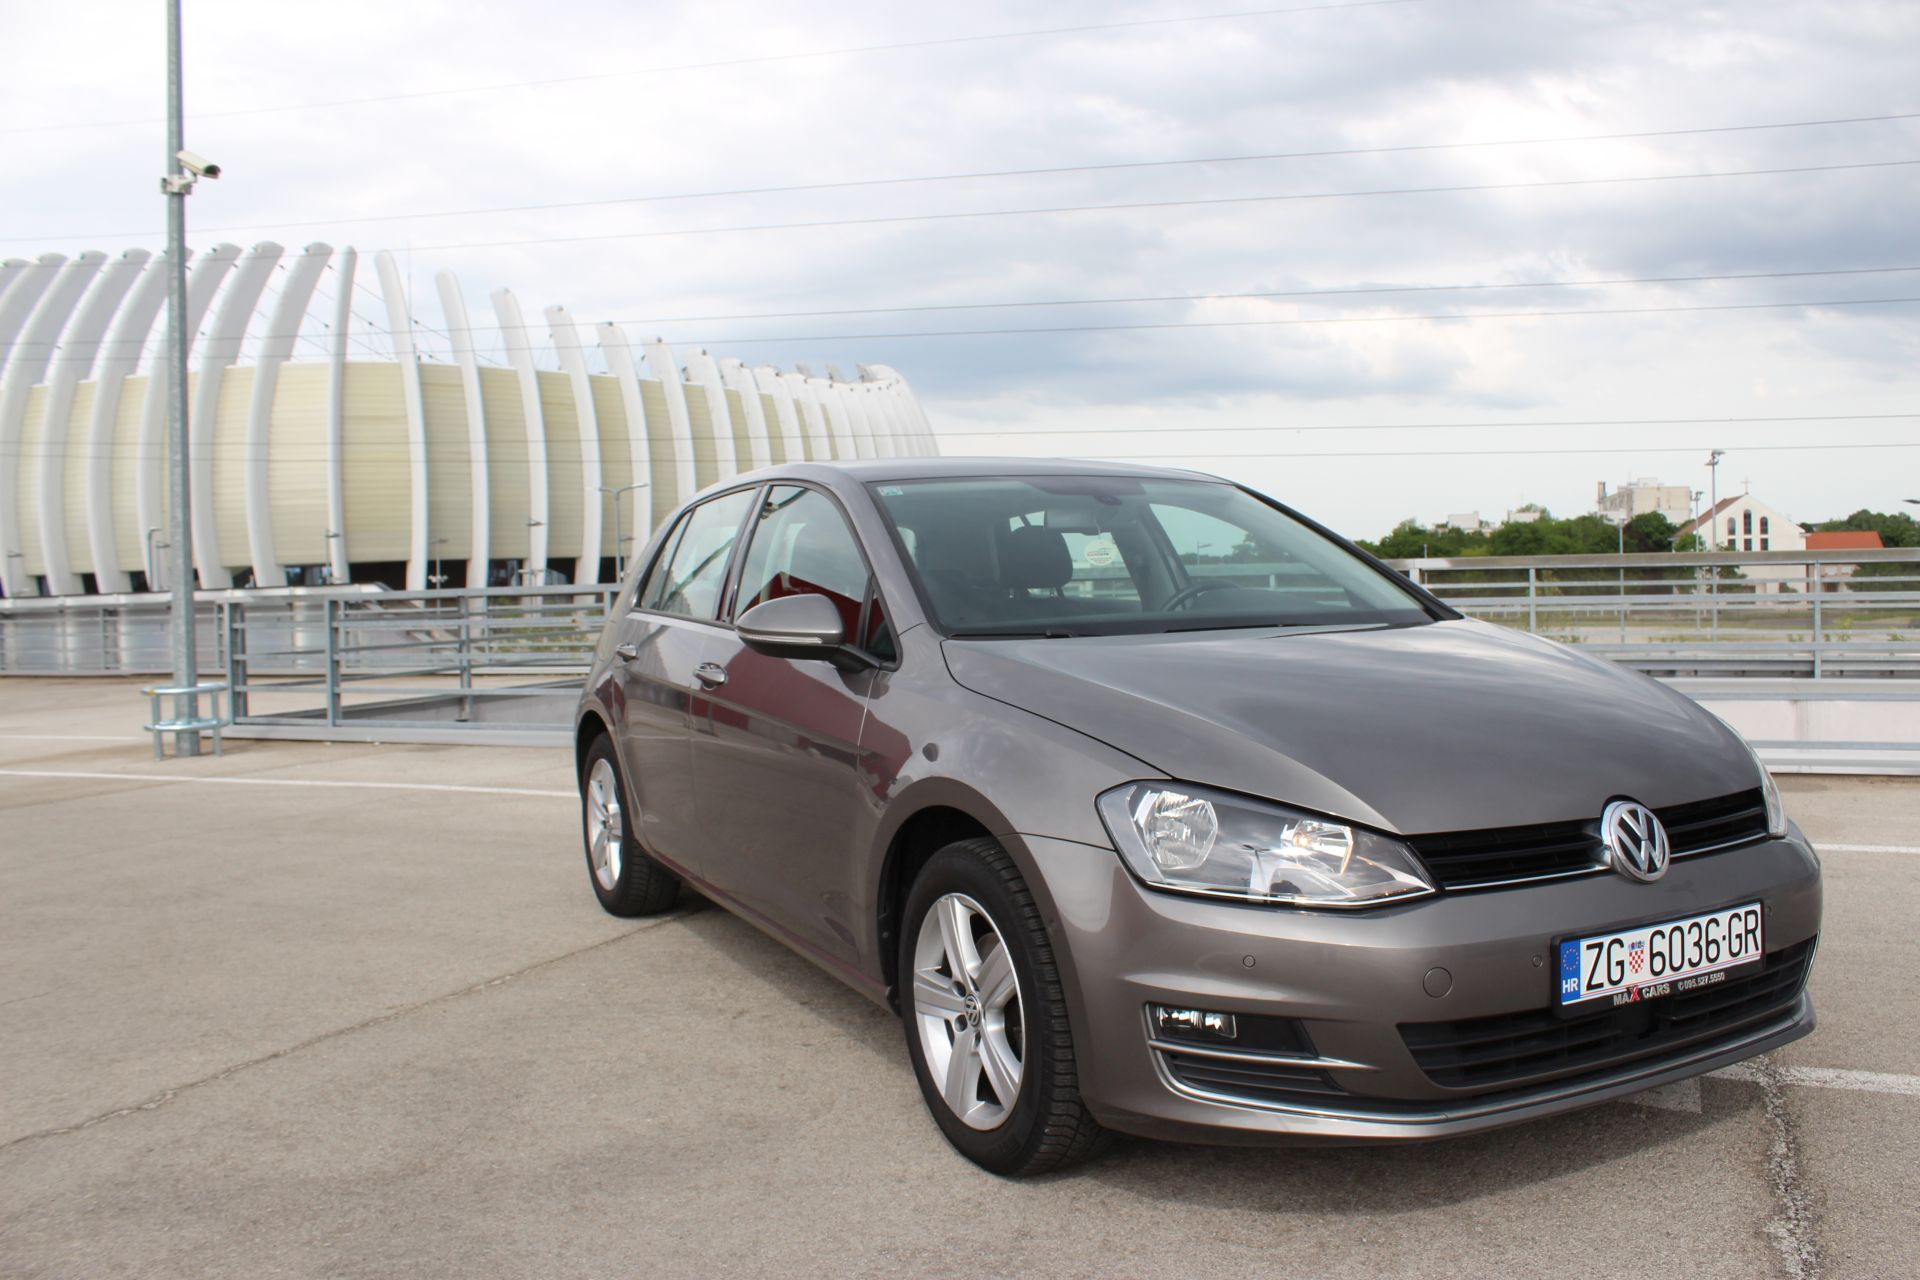 volkswagen golf vii 1 6 cr bmt highline navigacija. Black Bedroom Furniture Sets. Home Design Ideas